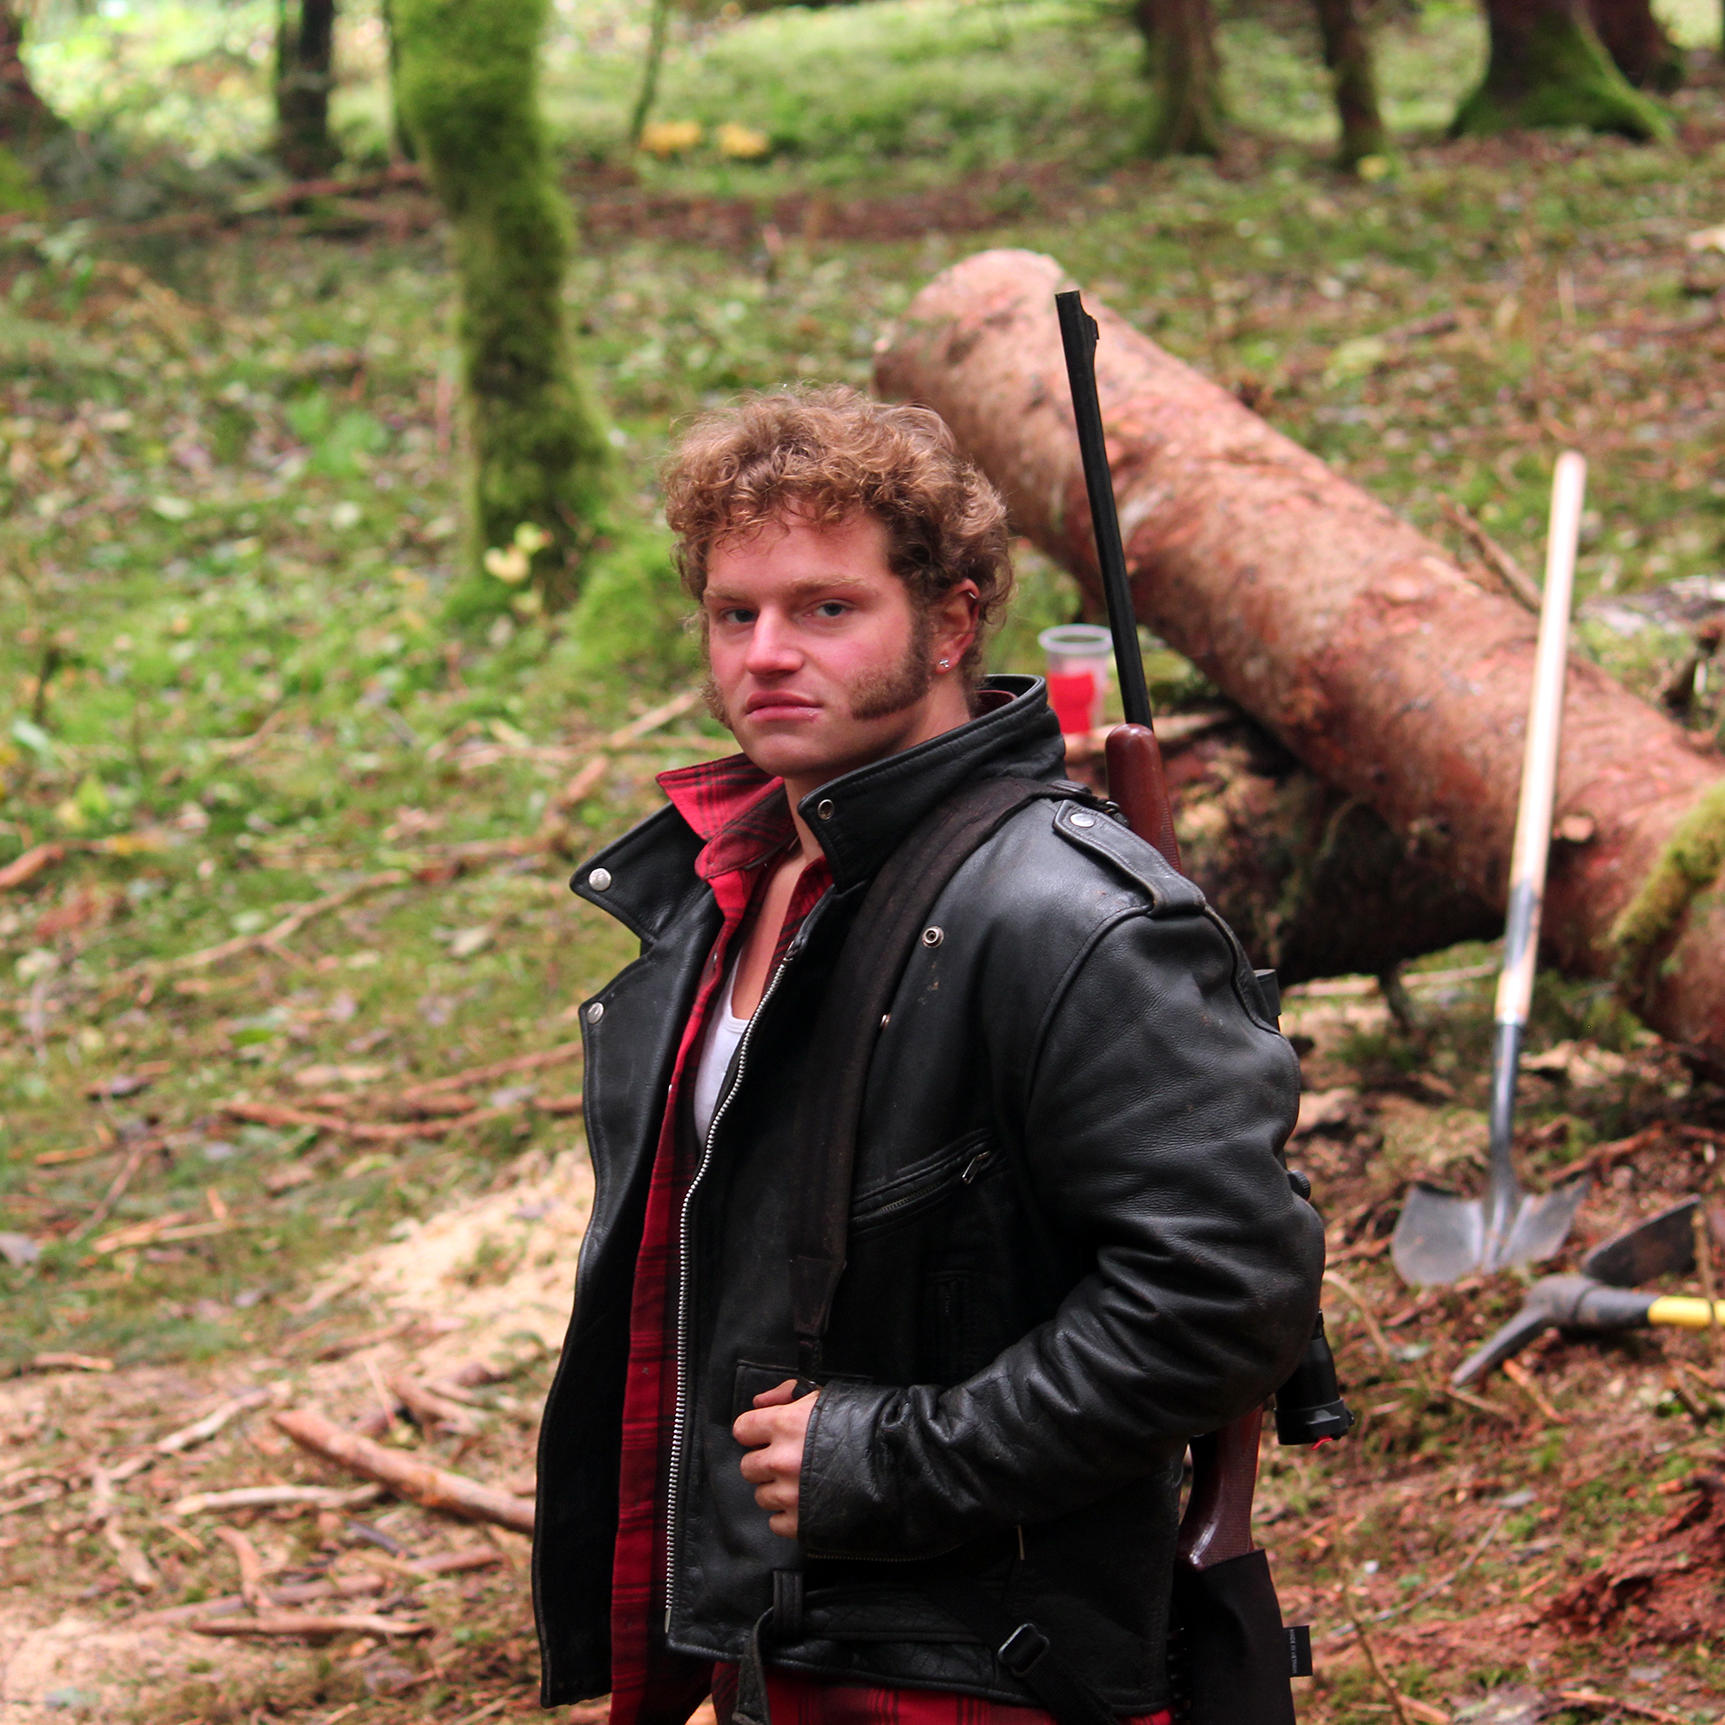 Story behind the brown s accents alaskan bush people discovery